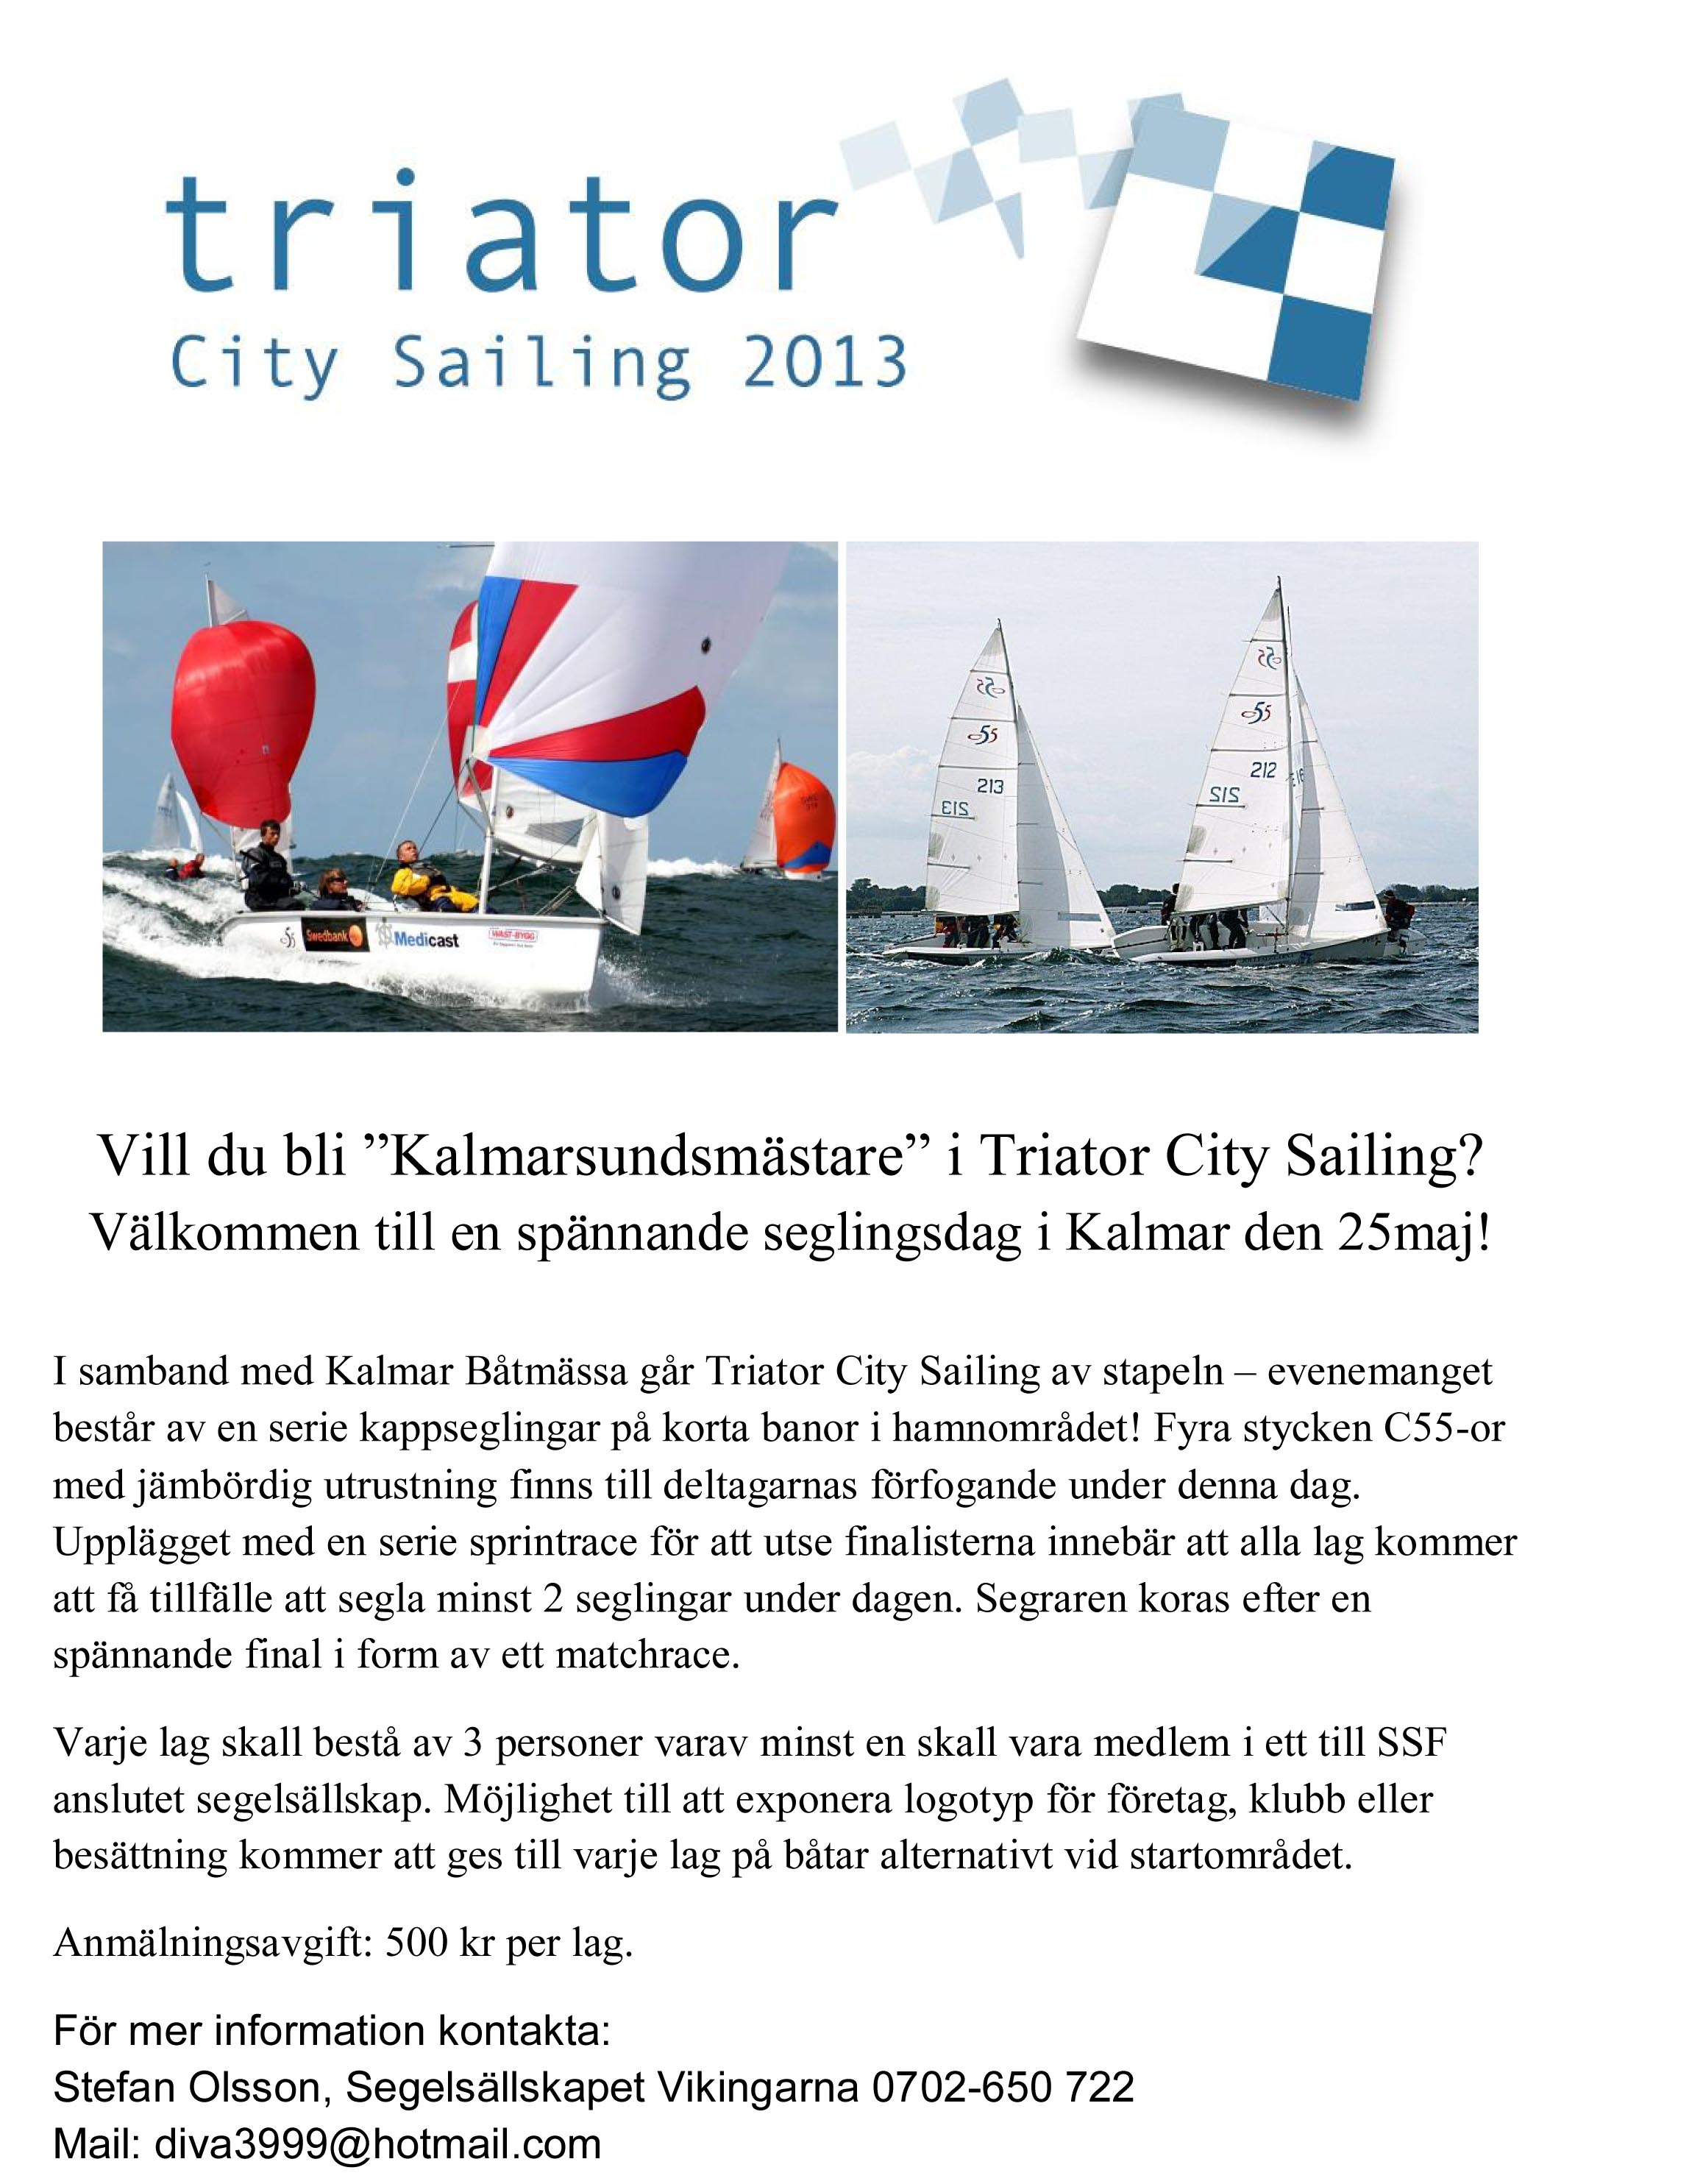 Triator City Sailing